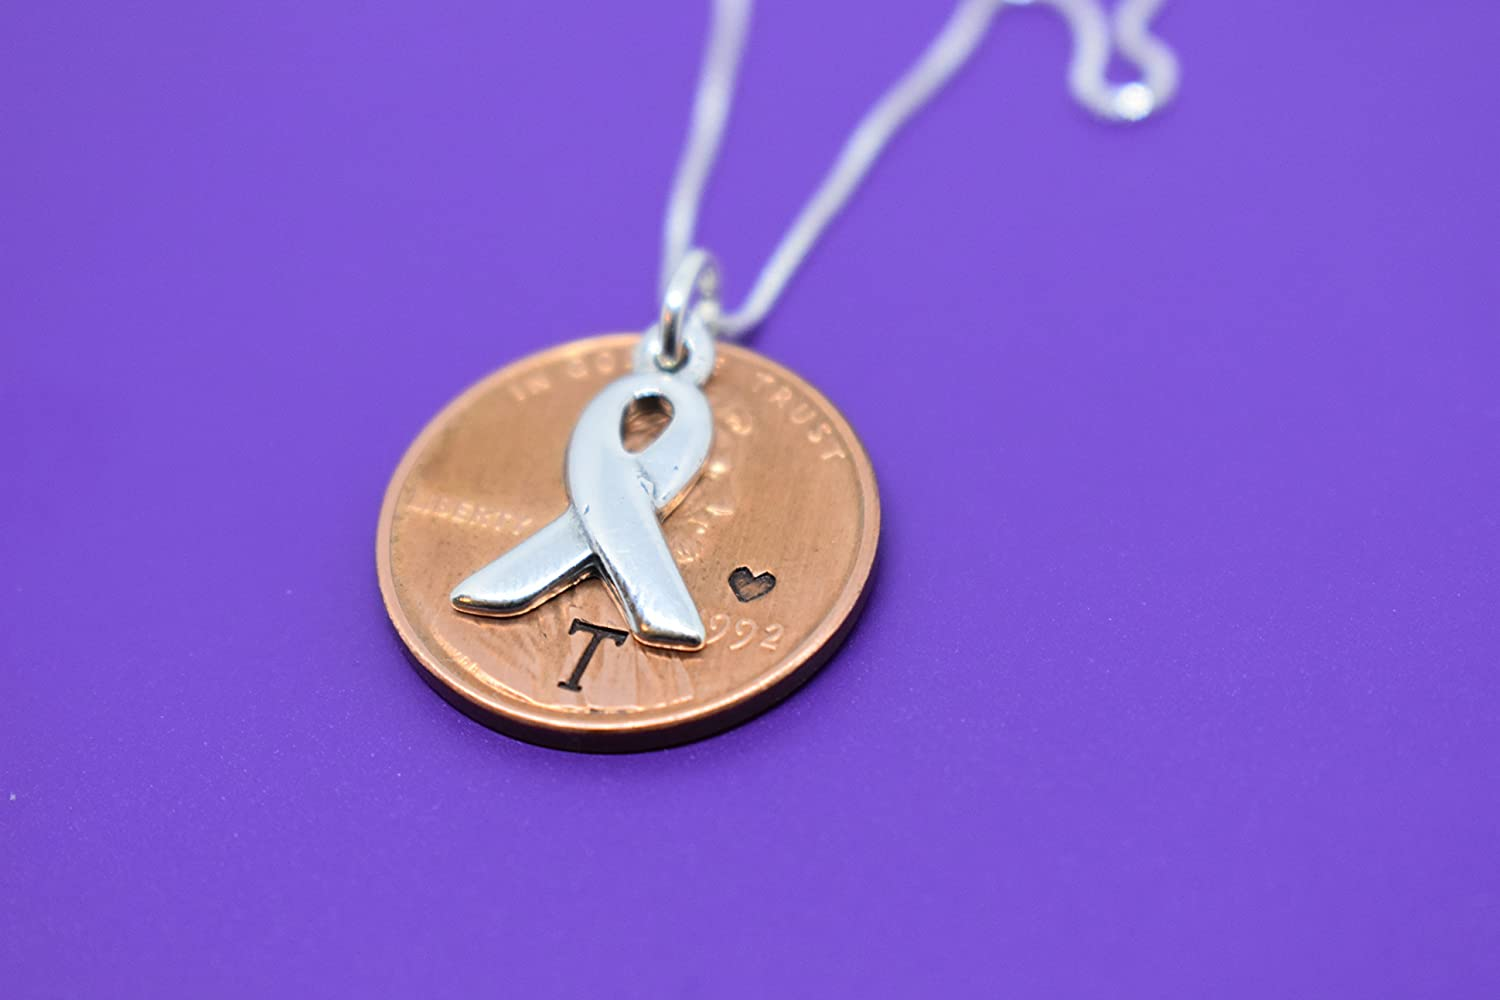 Amazon com: Cancer Memorial Necklace, Jewelry - Penny from